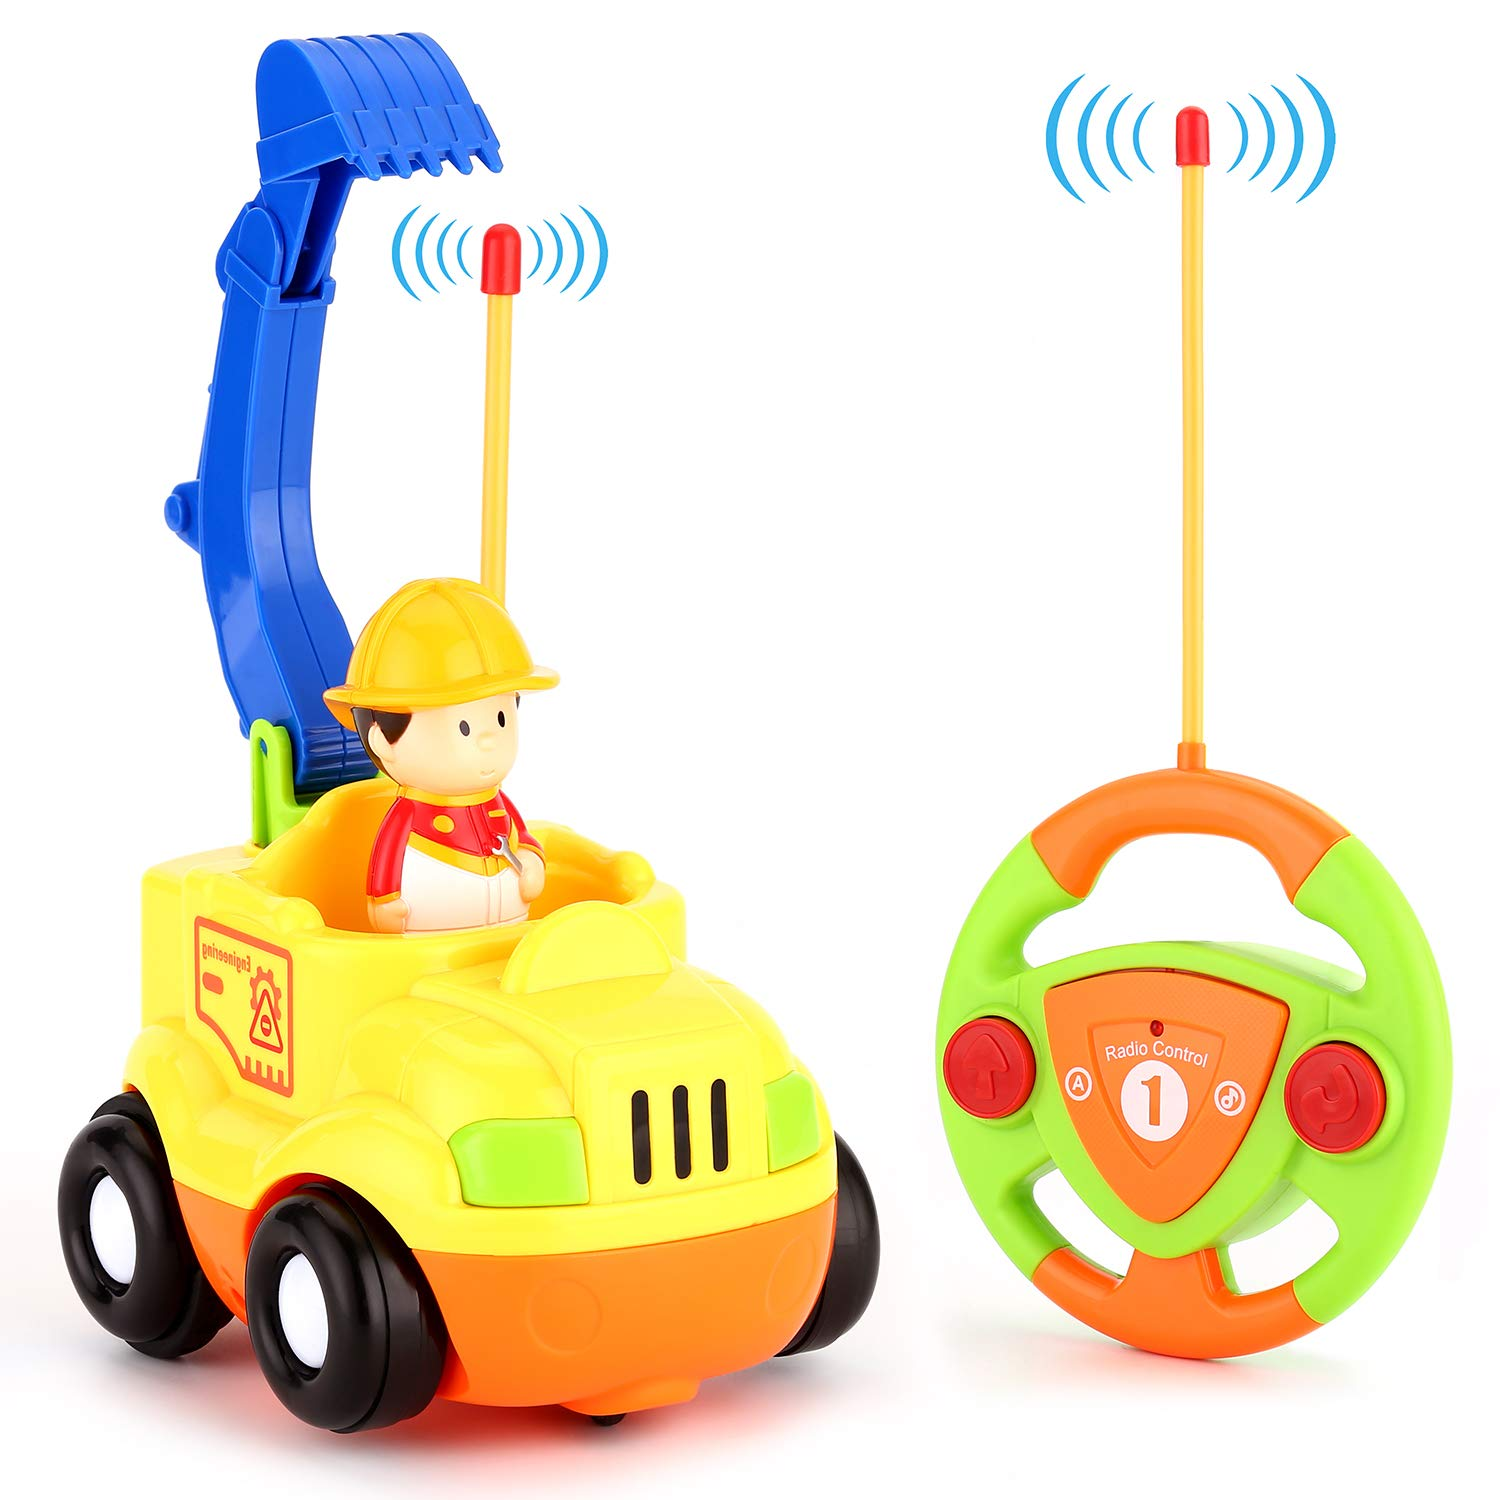 BruRkim Cartoon RC Race Car Radio Remote Control with Music & Sound Toy for Baby, Toddler, Kids and Children Cars, School Classroom Prize, 3 Year Old Birthday Gift (Toy-01)